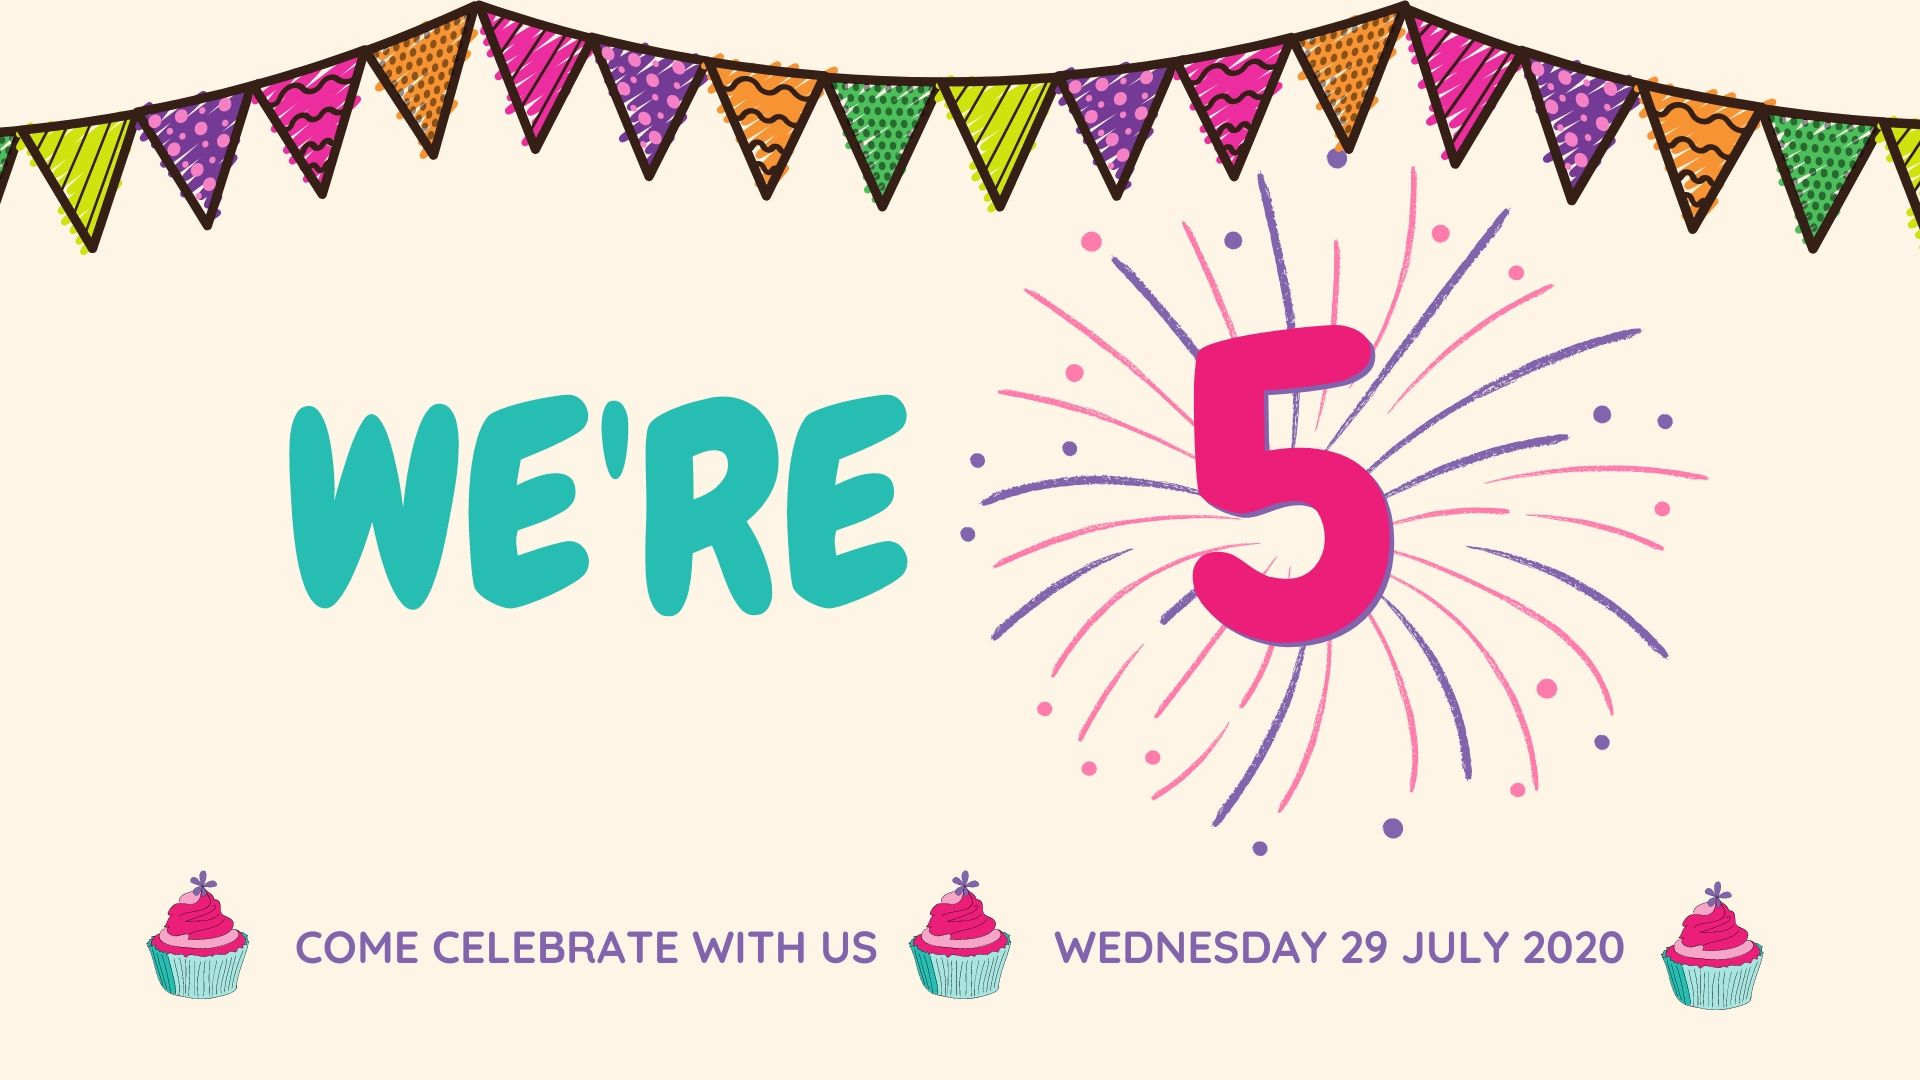 Canvas Coworking 5th Birthday - Wednesday 29 July 2020